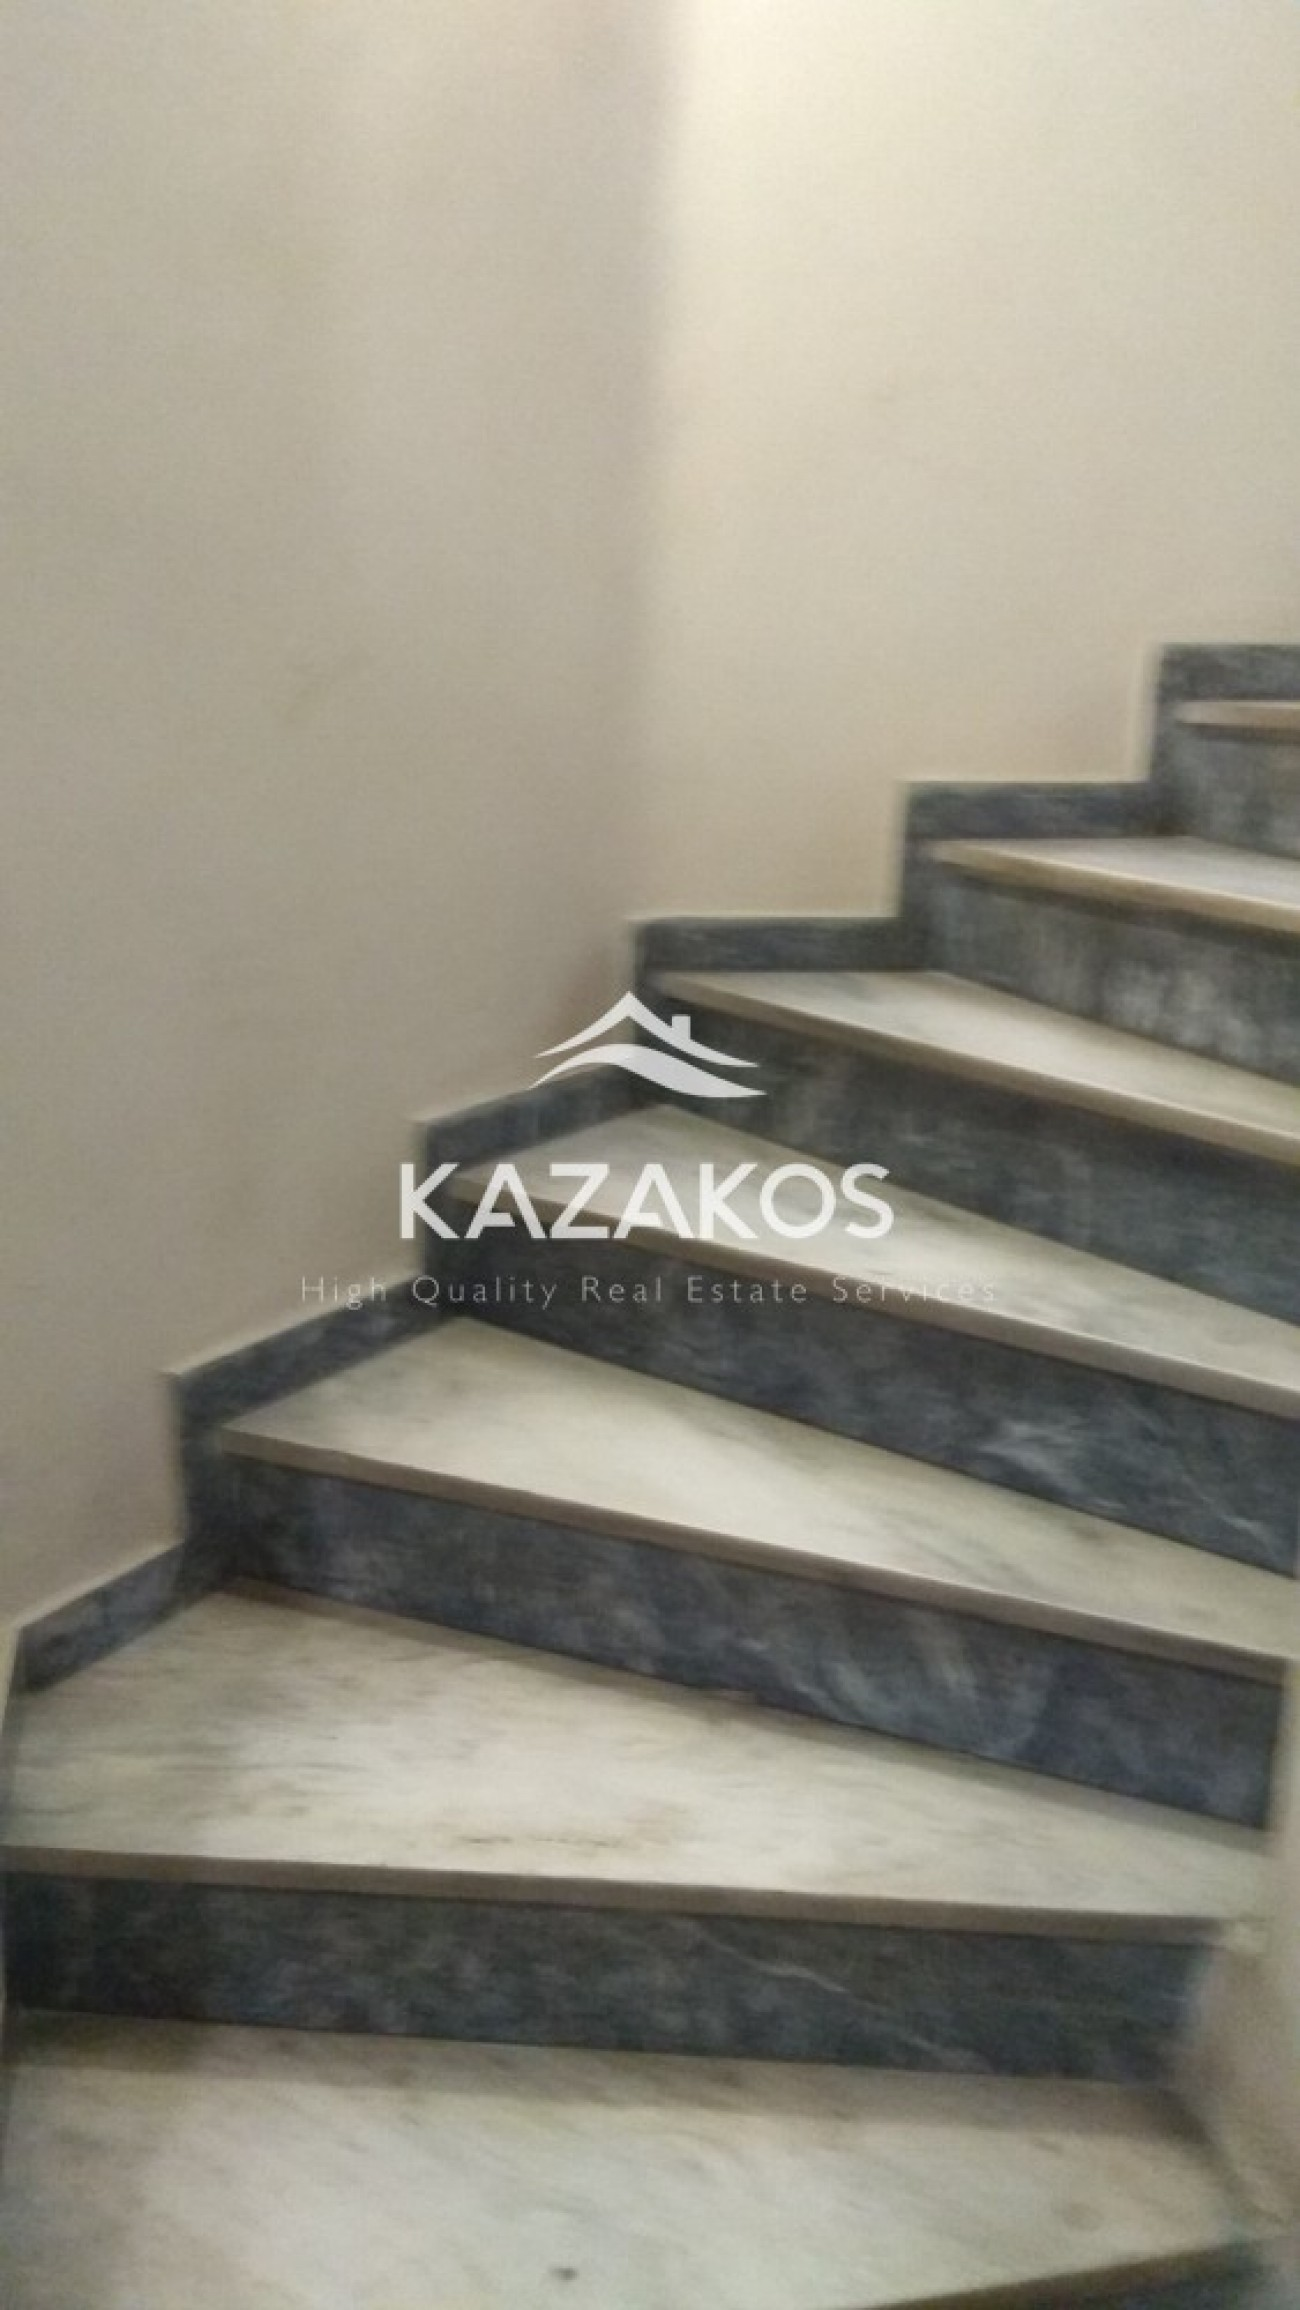 Townhouse for Sale in Kaisariani, Central & South Region of Athens, Greece